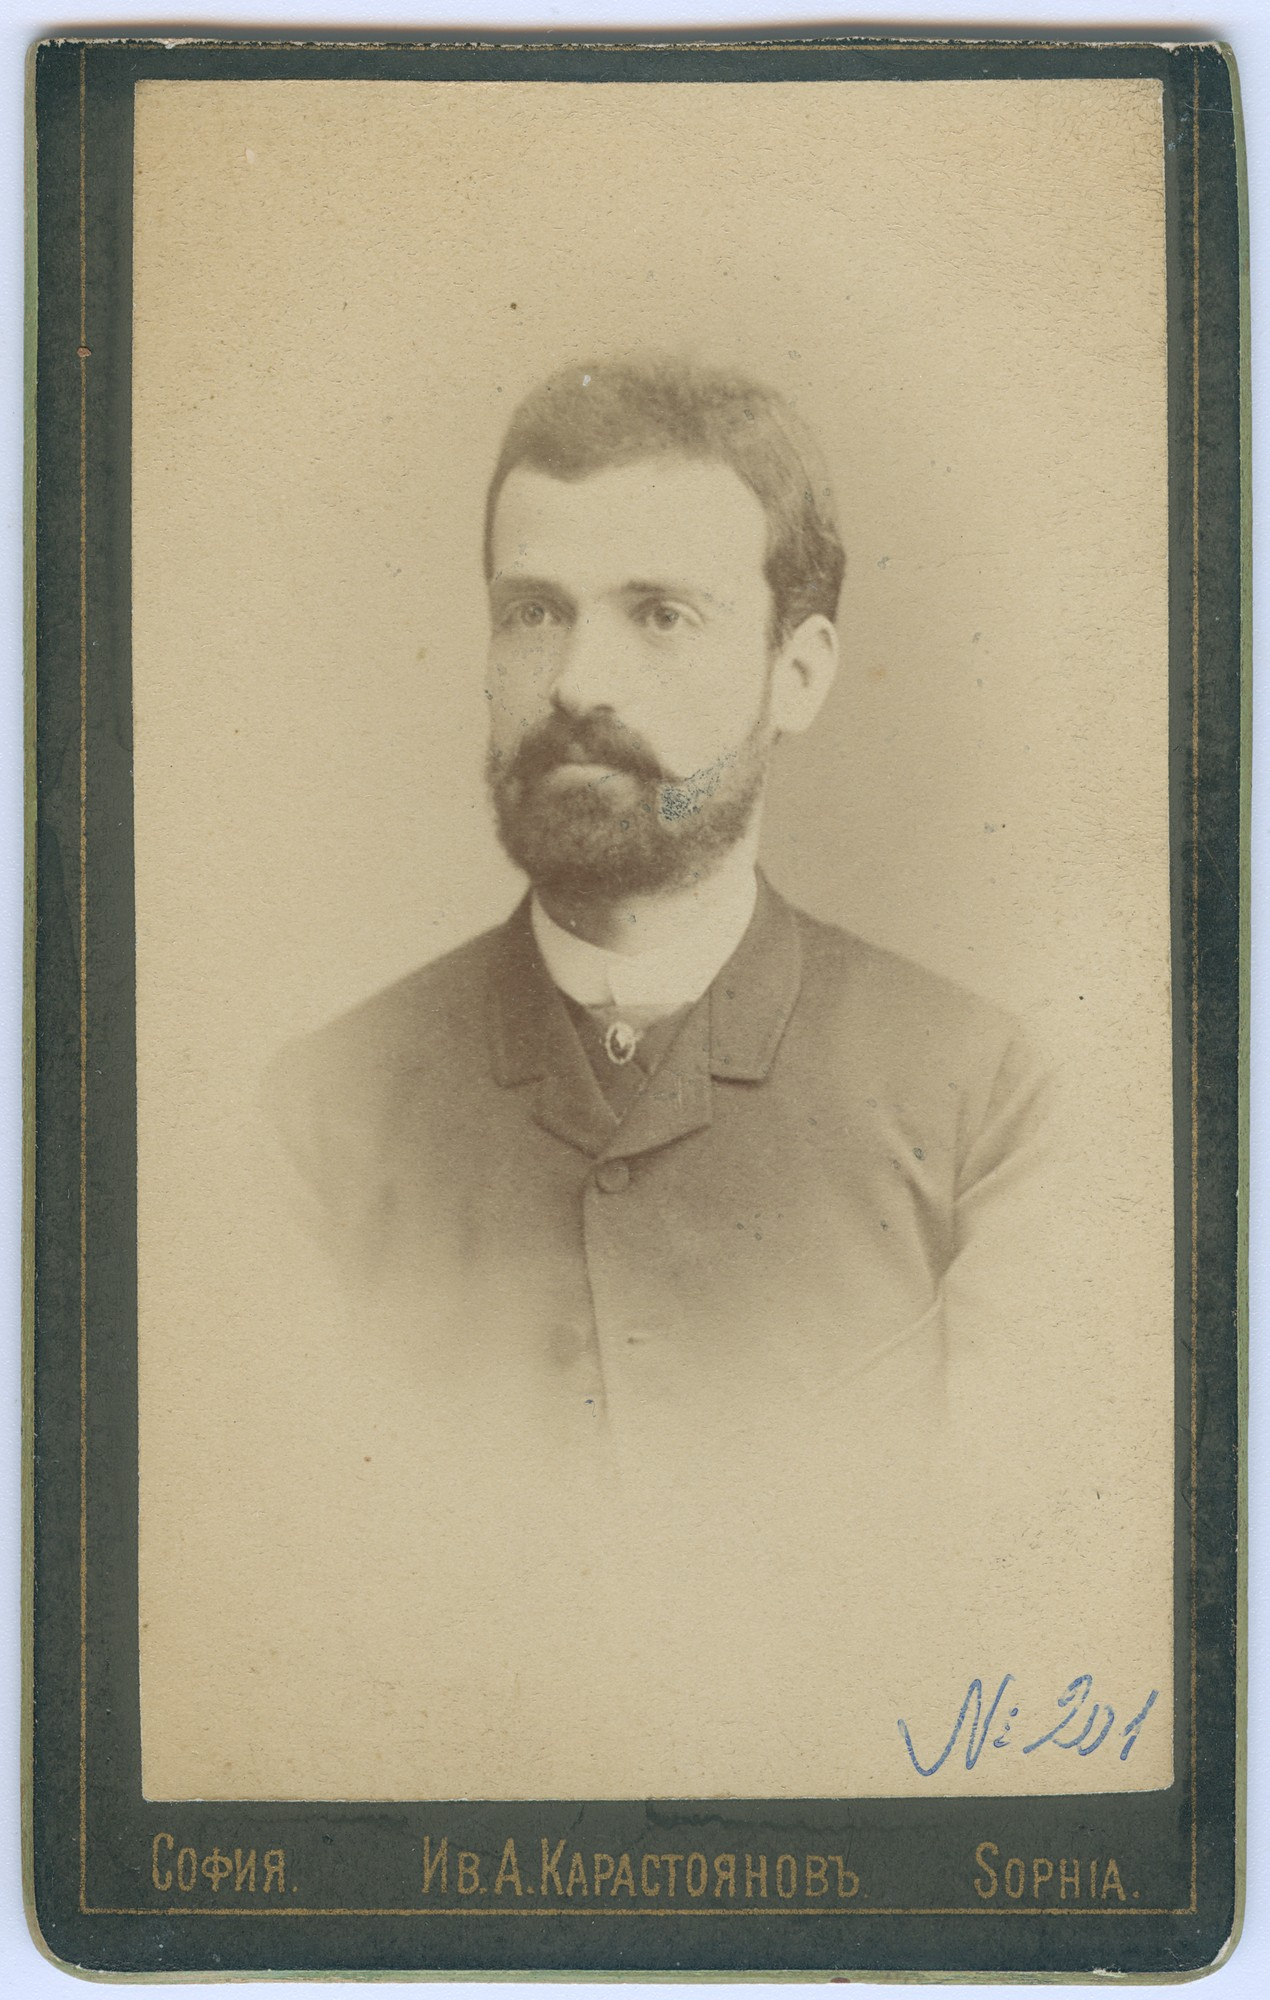 Studio portrait of Nik. Manolov, © State Archives - Plovdiv